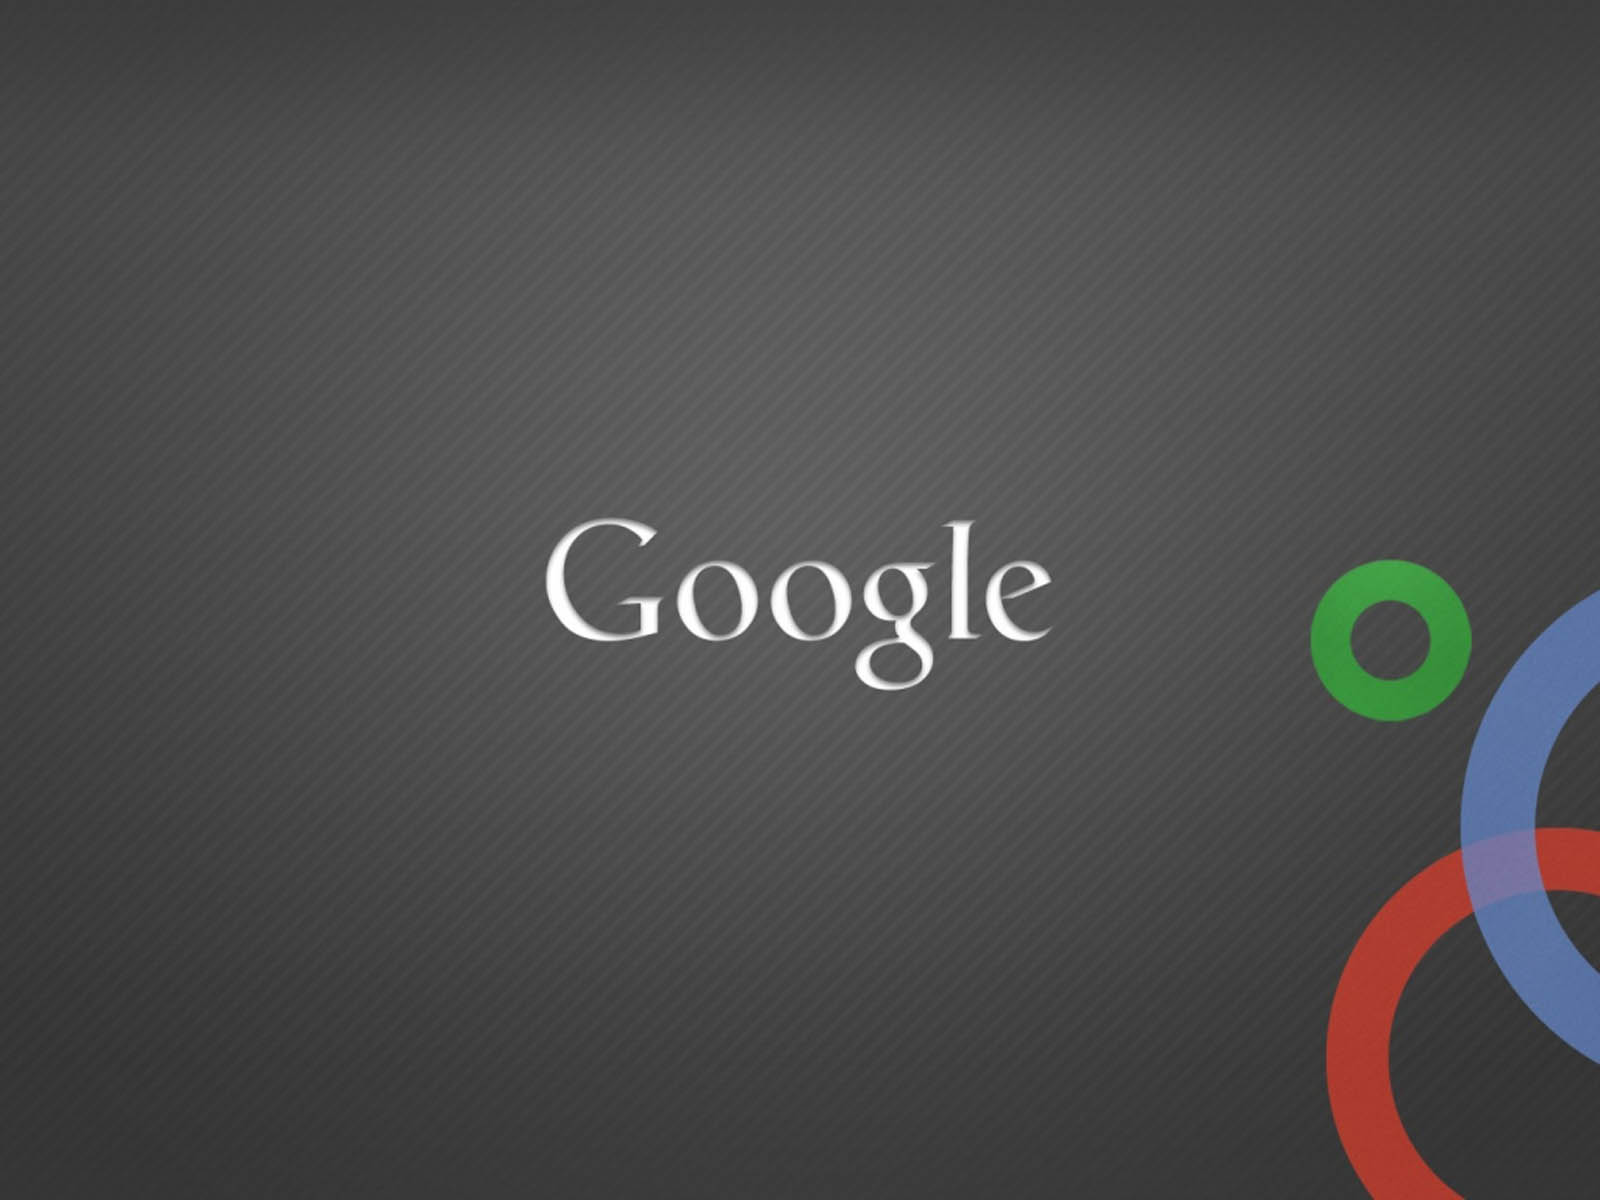 Fantastic Google Wallpaper